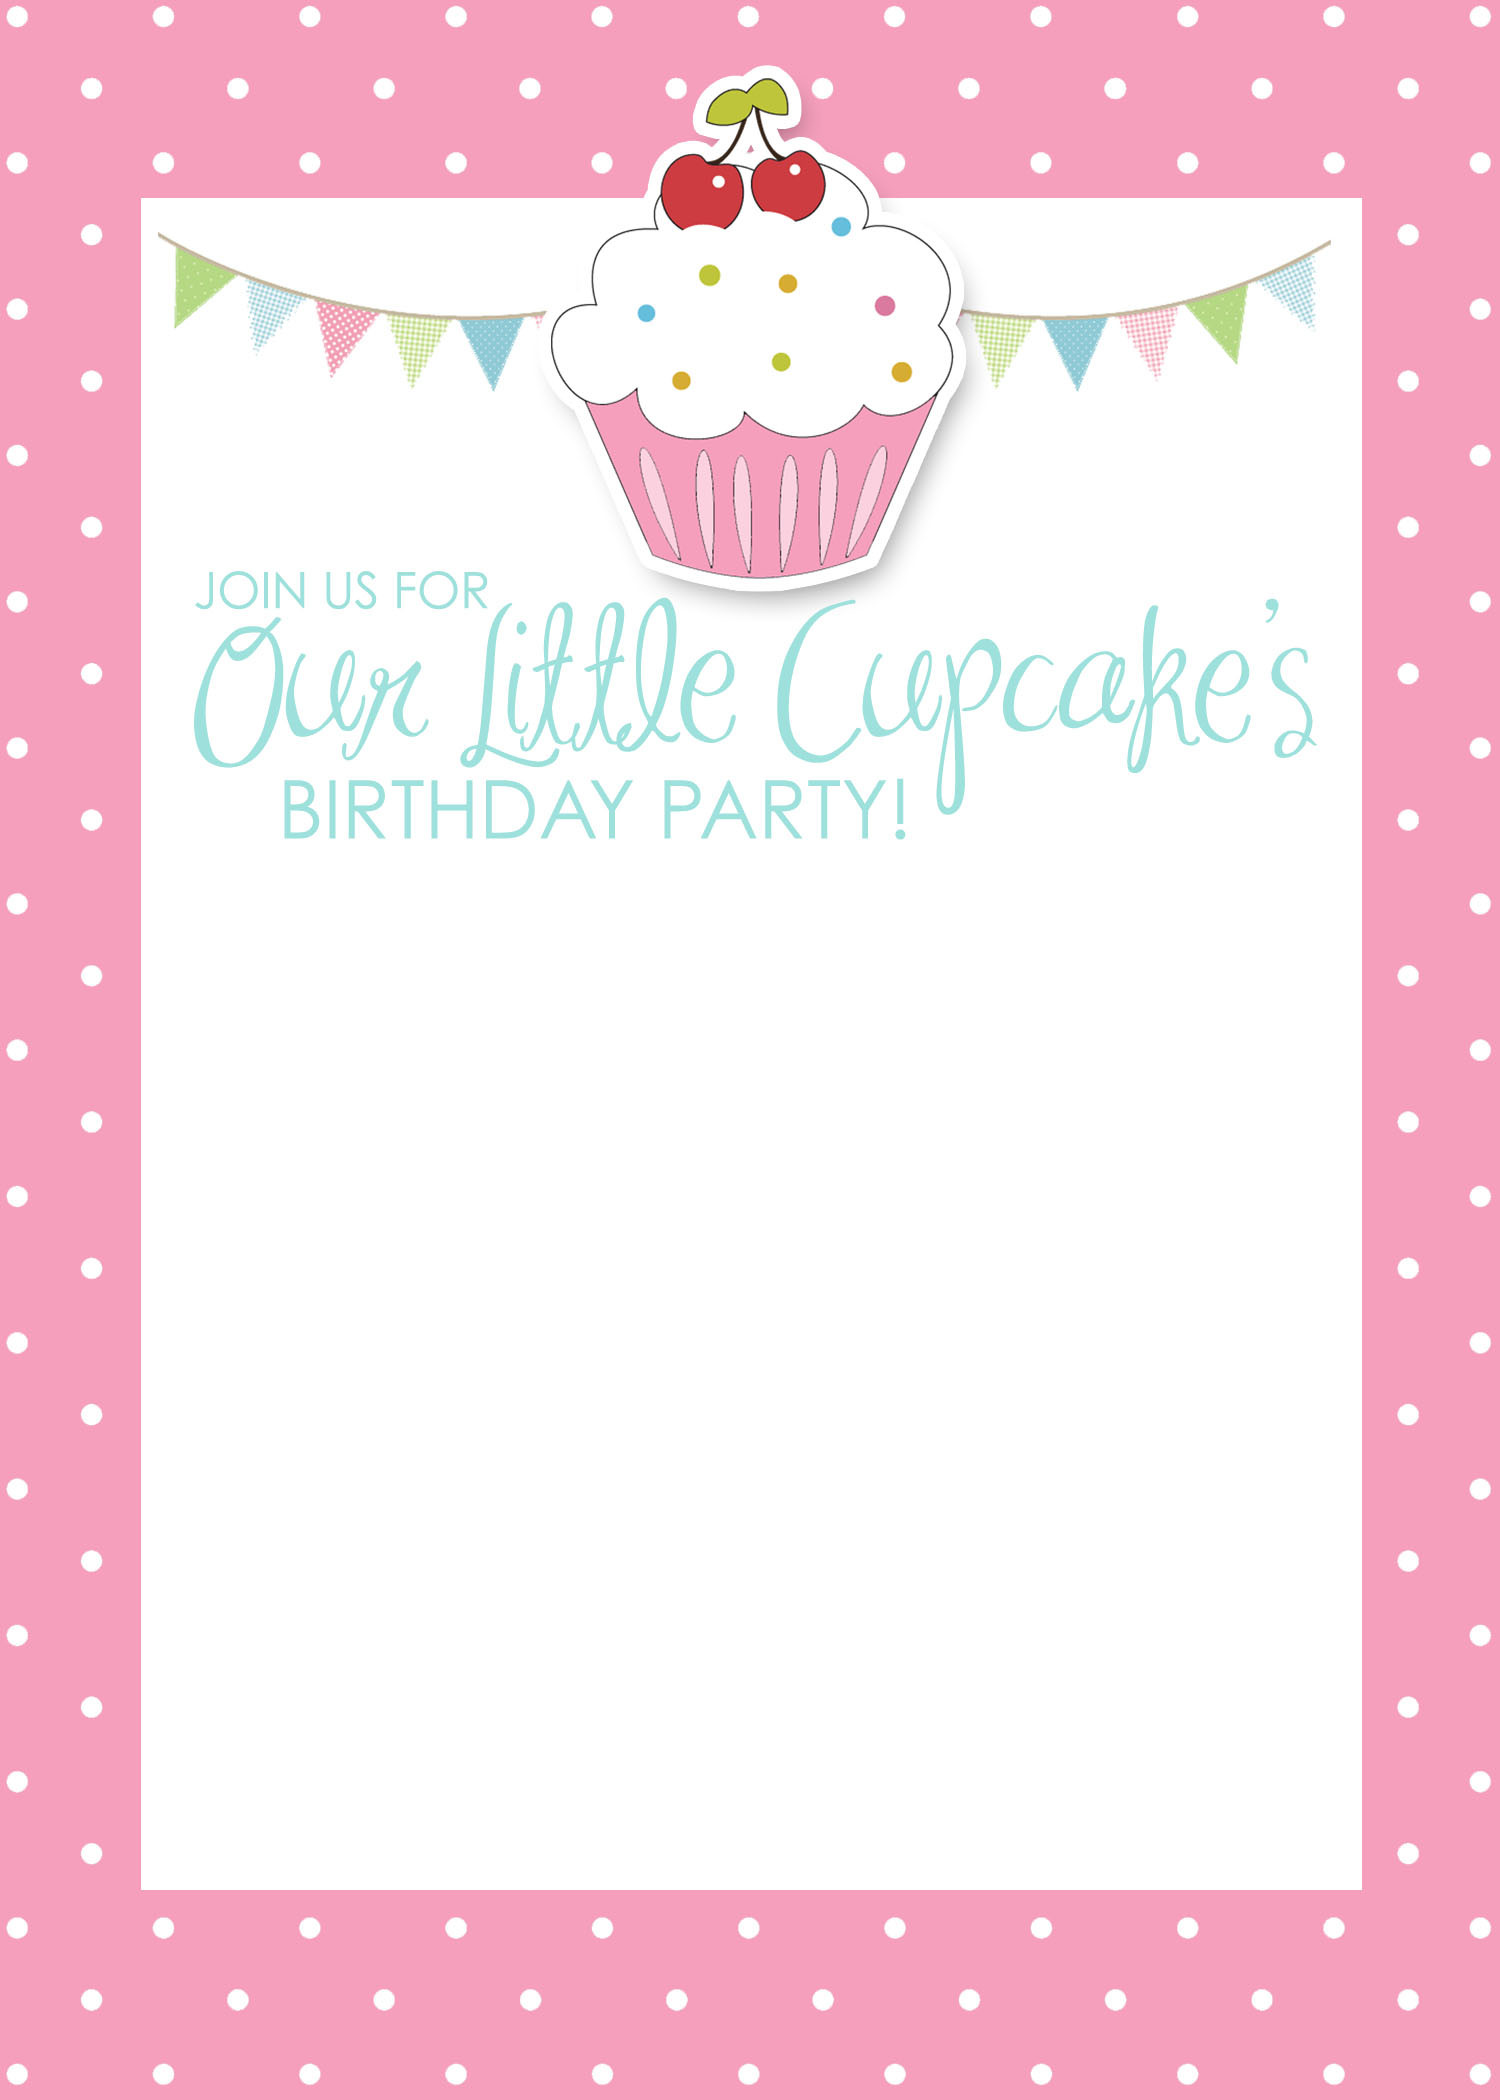 Best ideas about Invitation For Birthday Party . Save or Pin Cupcake Birthday Party with FREE Printables How to Nest Now.